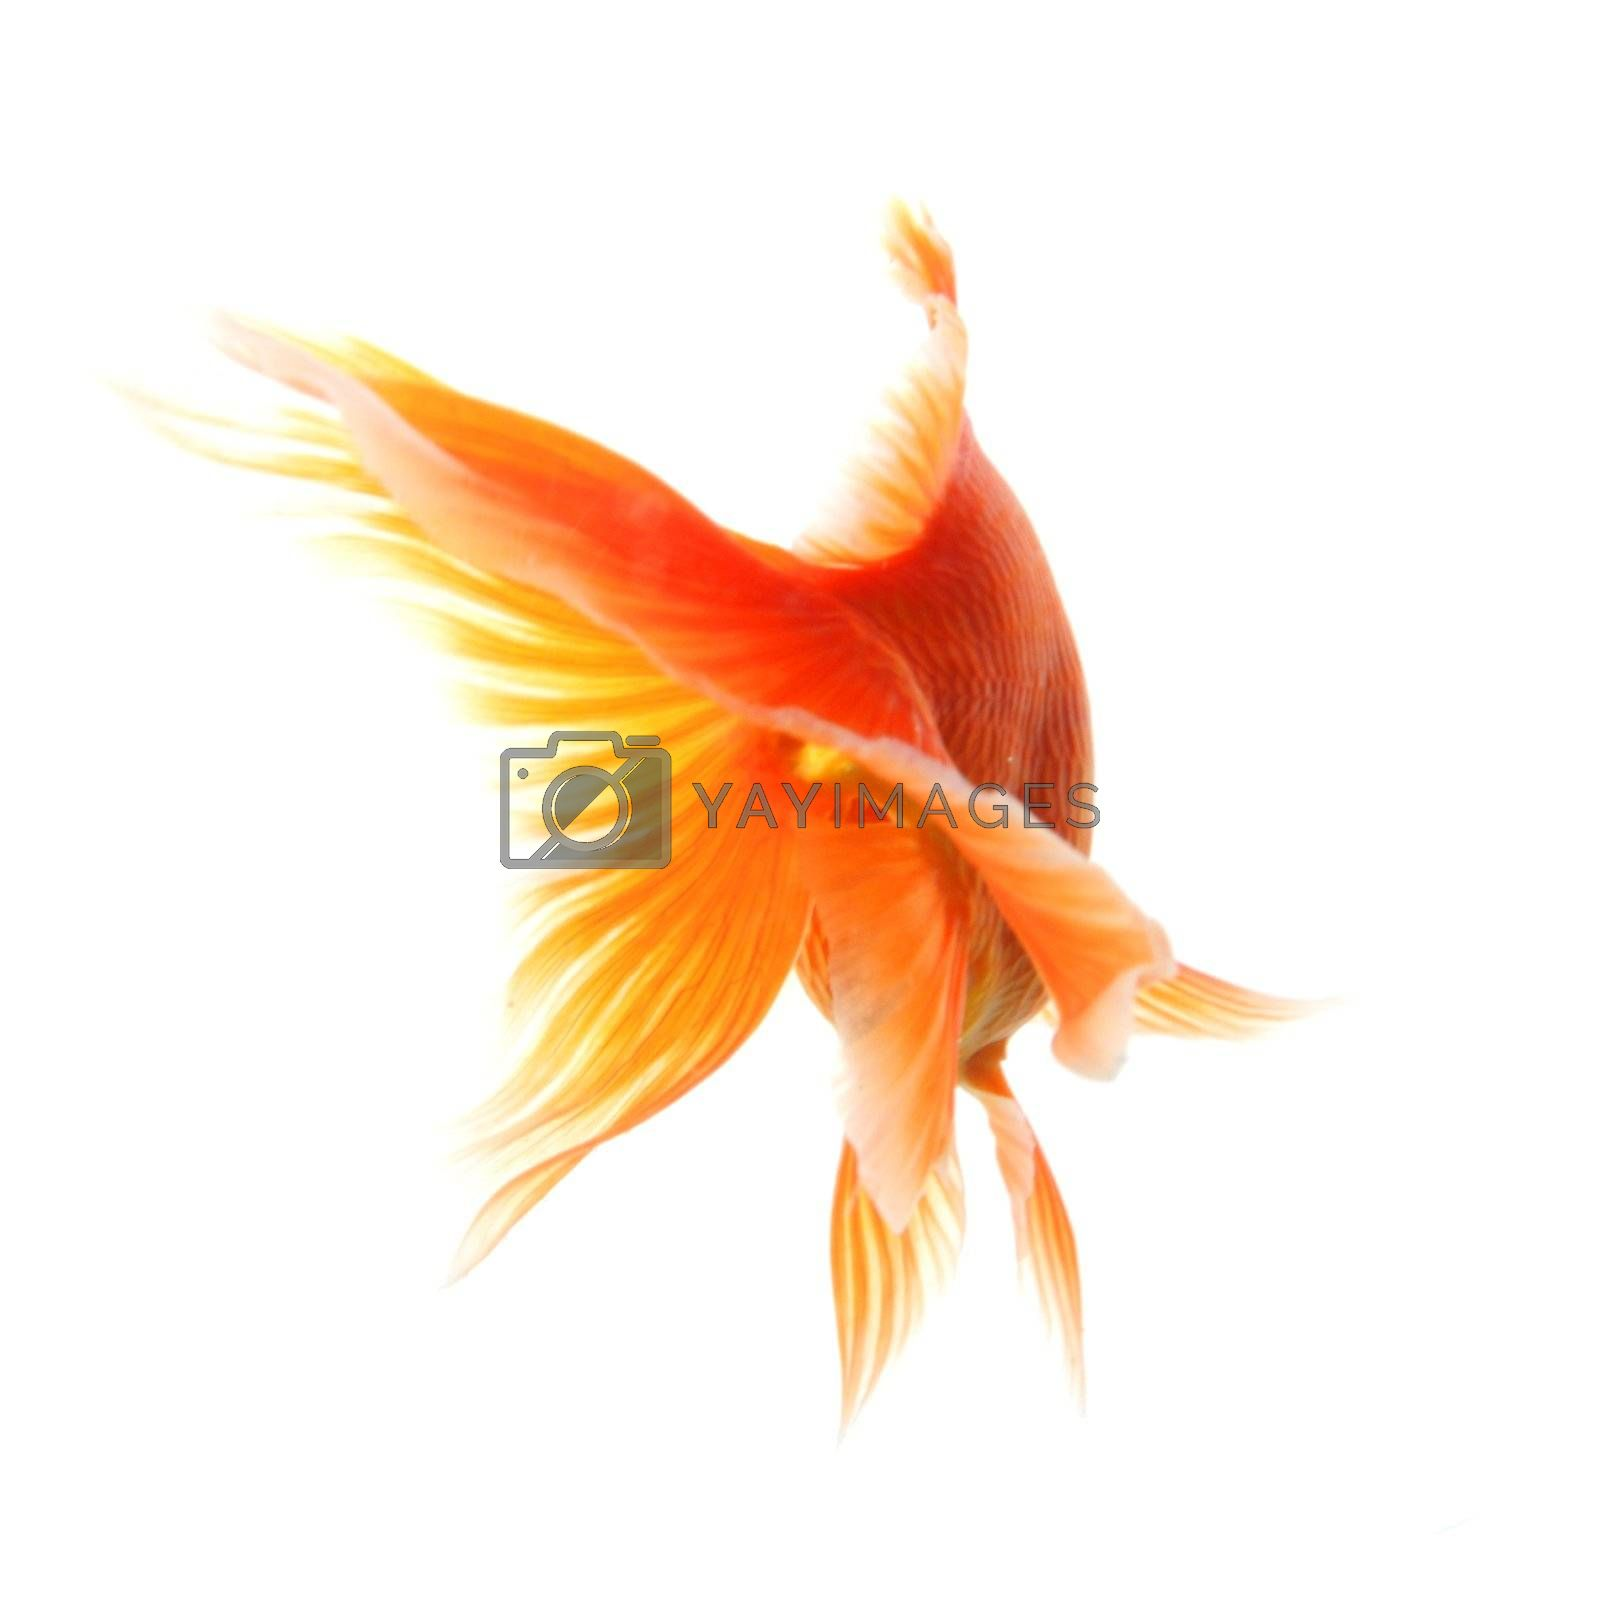 swimming single goldfish isolated on white showing lonelyness concept